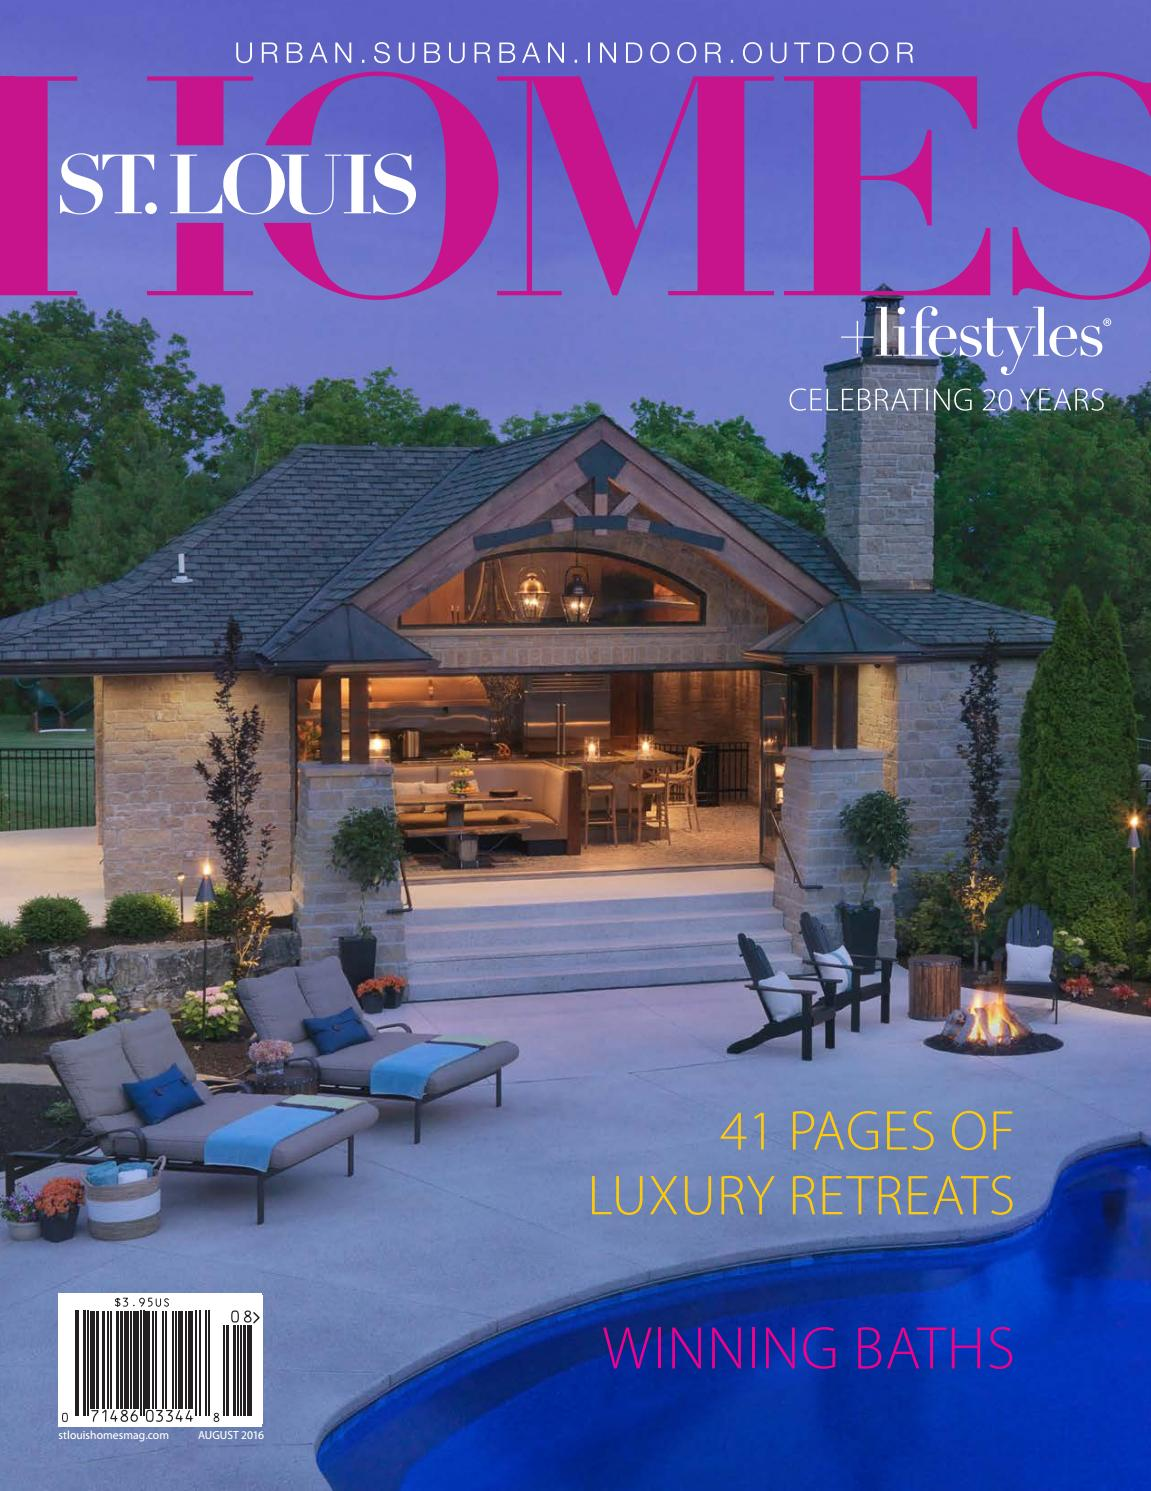 august 2016 by st louis homes lifestyles issuu